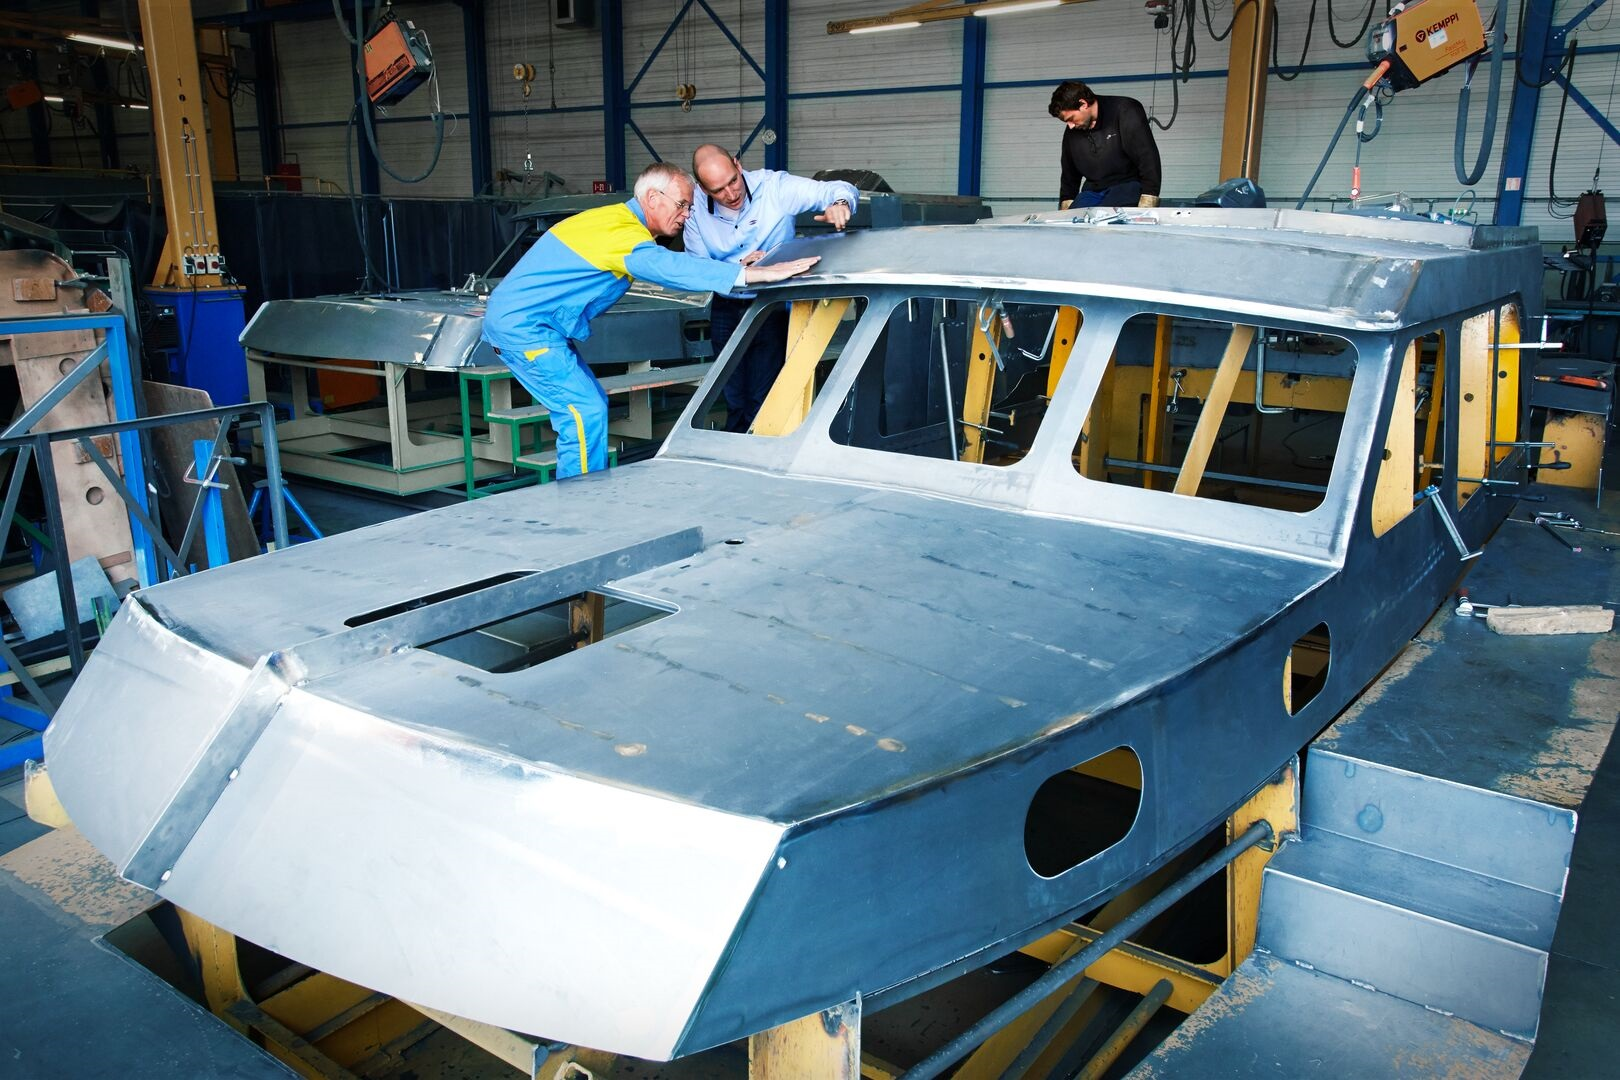 Tata Steel operative working together with Linssen on a new yacht being built